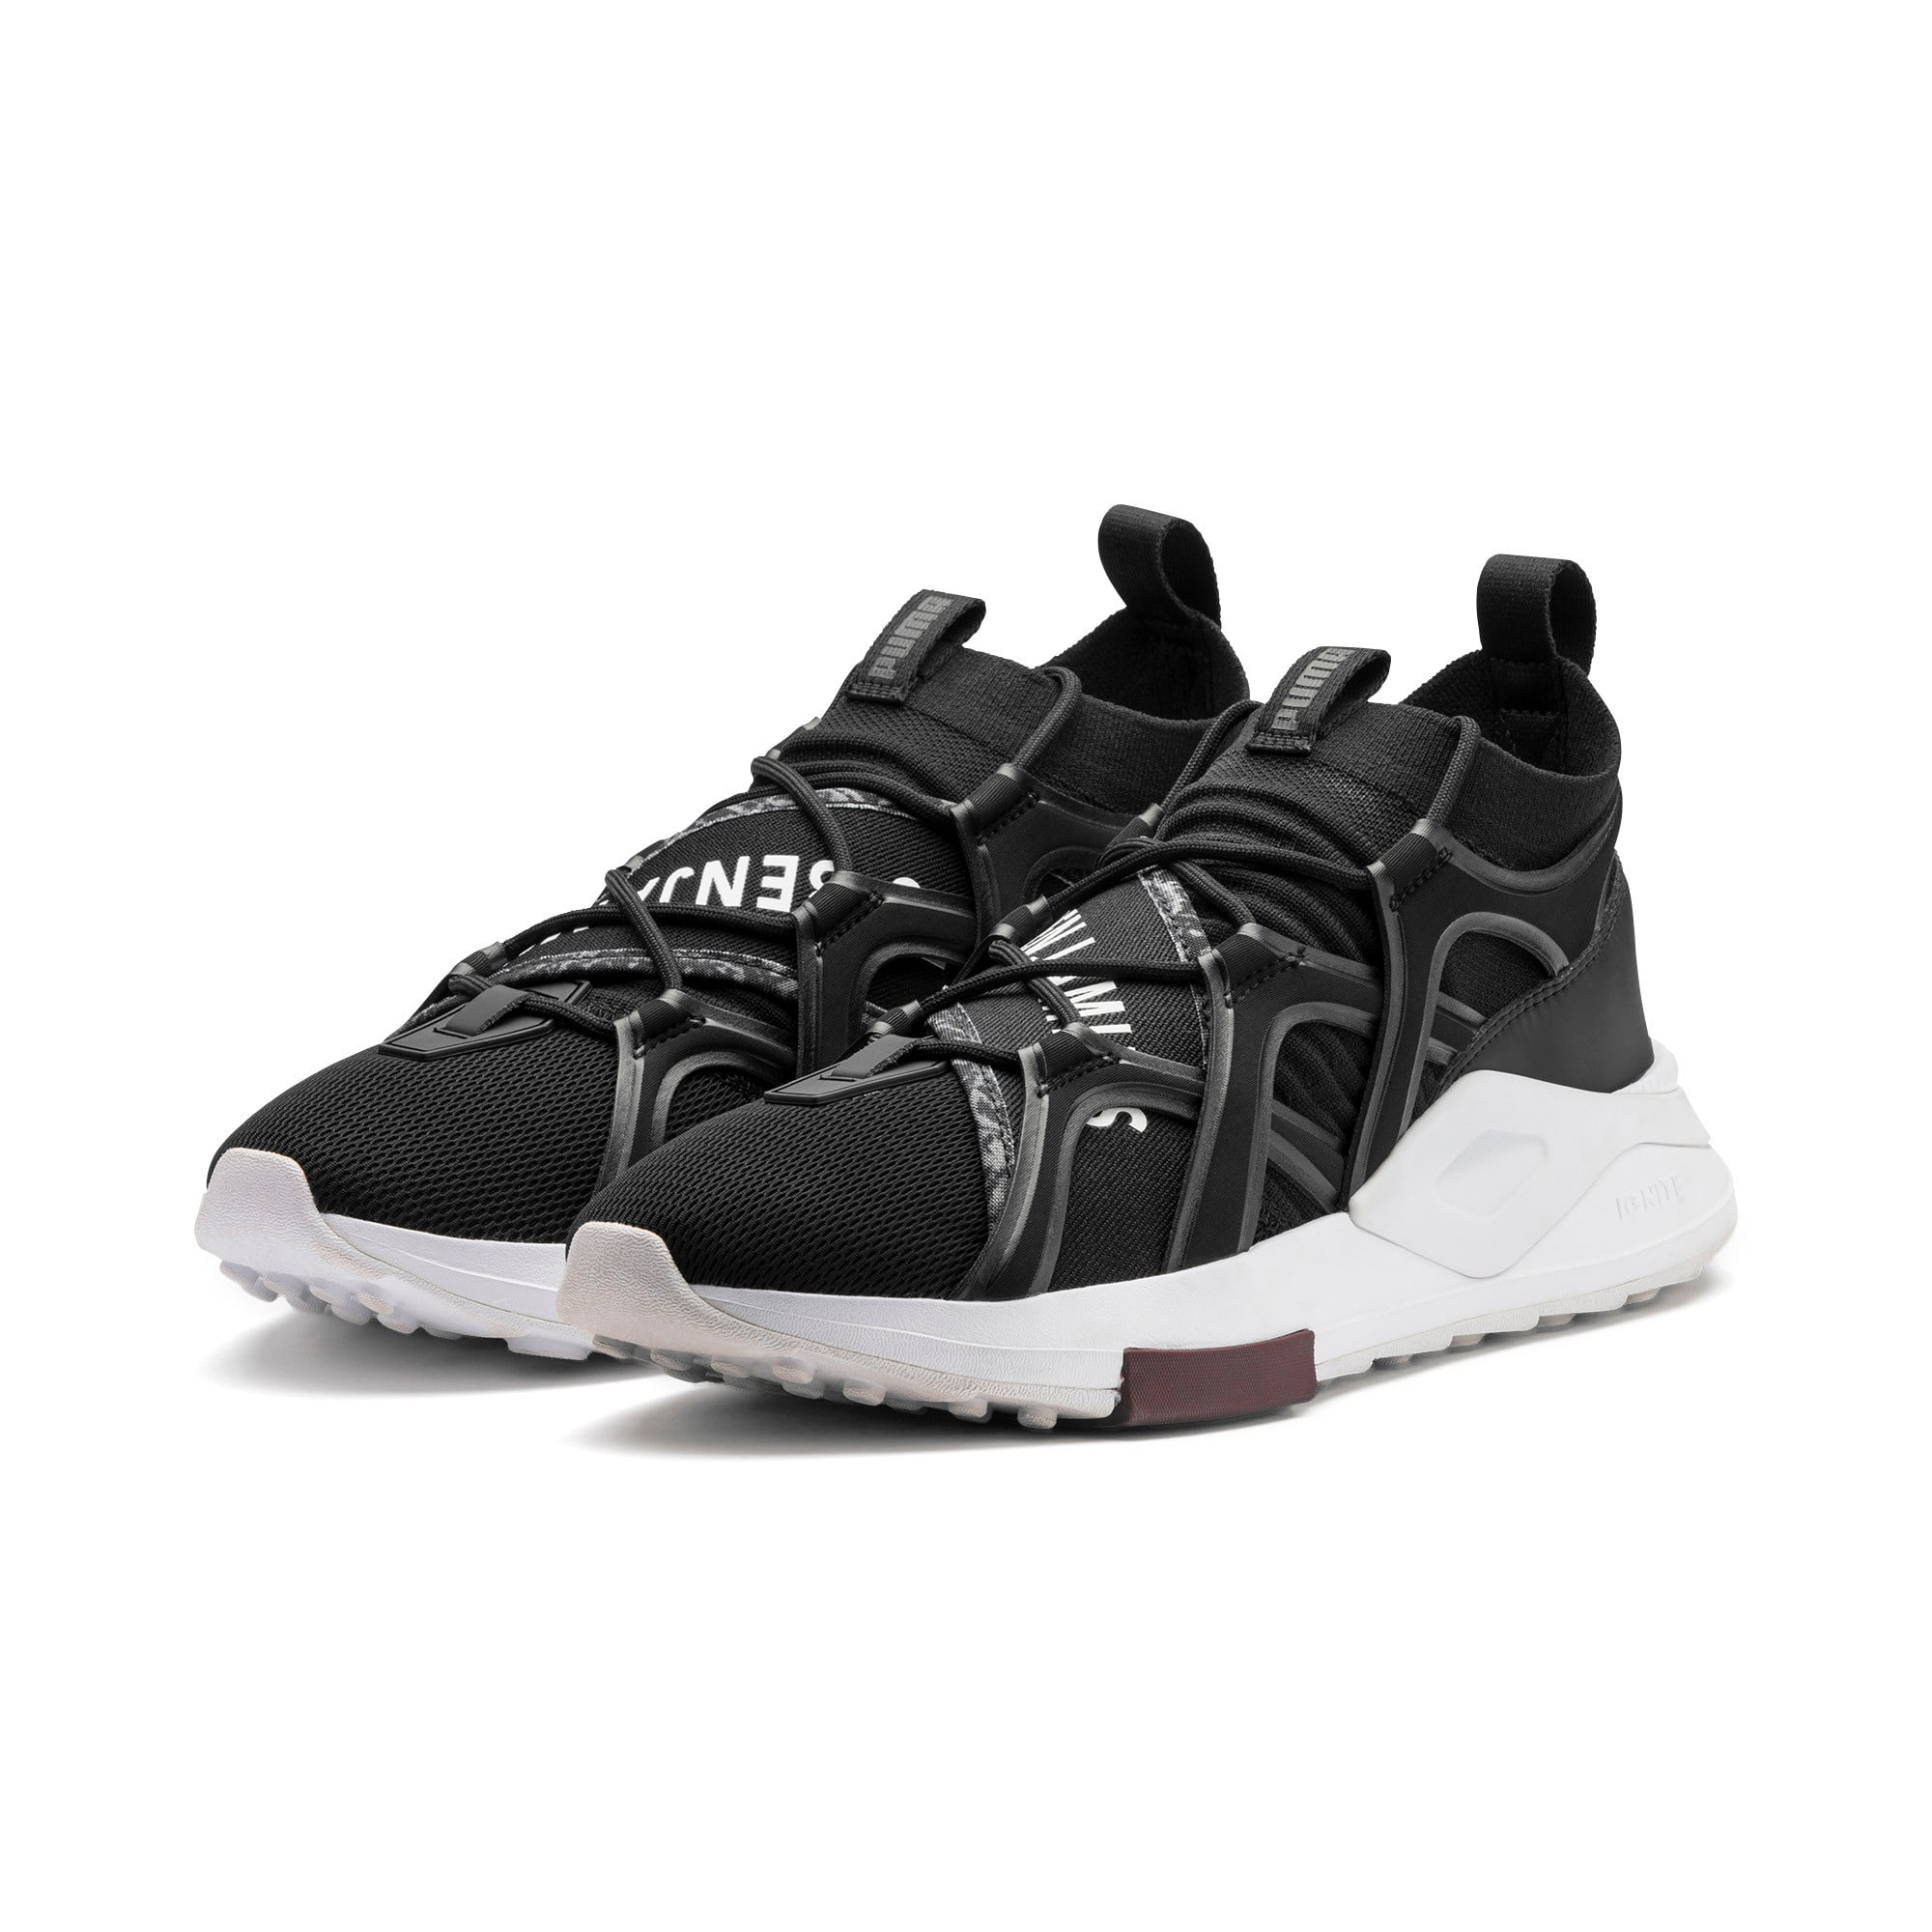 Thumbnail 4 of PUMA x LES BENJAMINS SHOKU Sneakers, Puma Black, medium